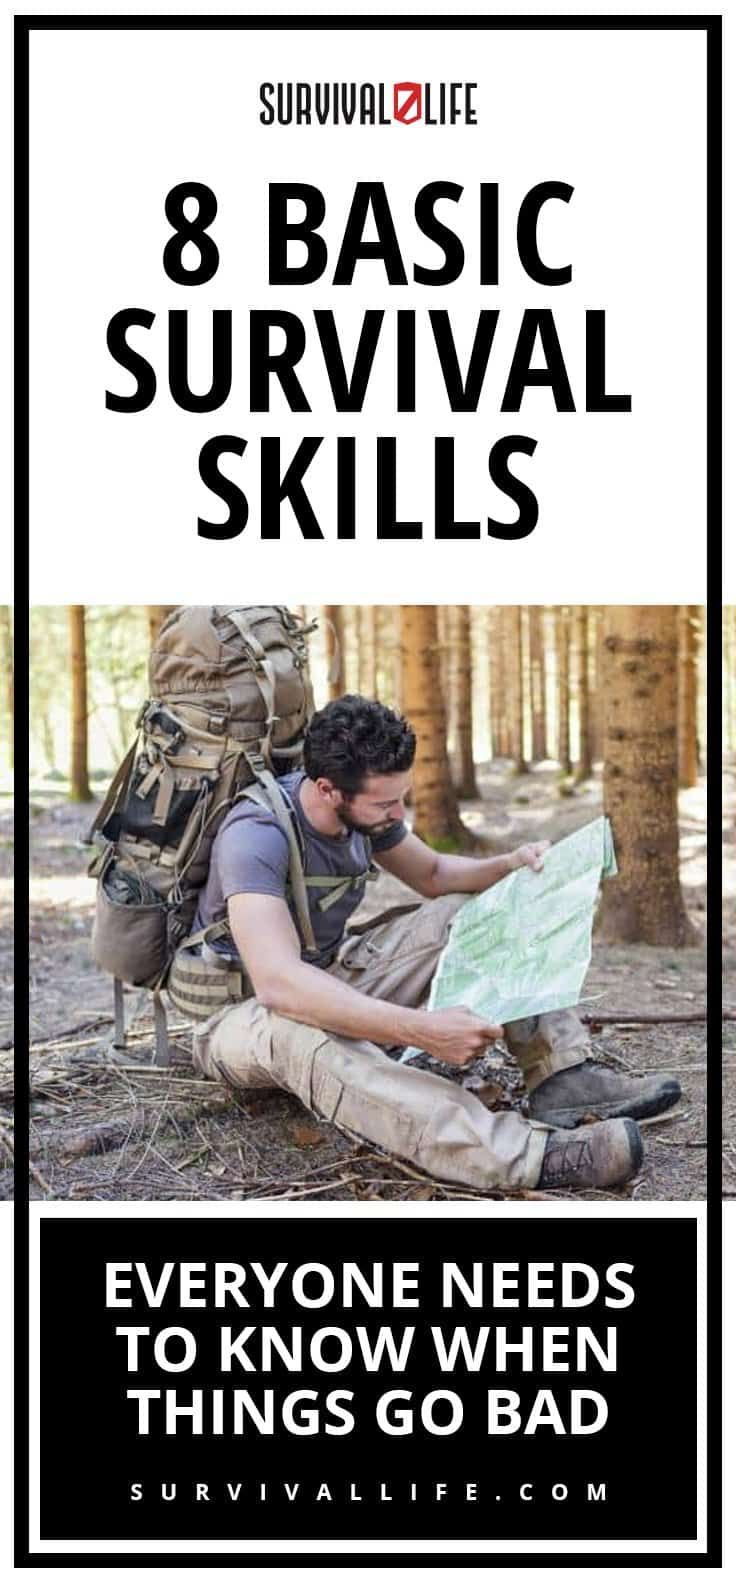 what i learnt from the video teacher survival skills Academic survival skills 2 teachers book (free video) watch video now toggle navigation learn how you may use your own backyard support you ensure their survival.